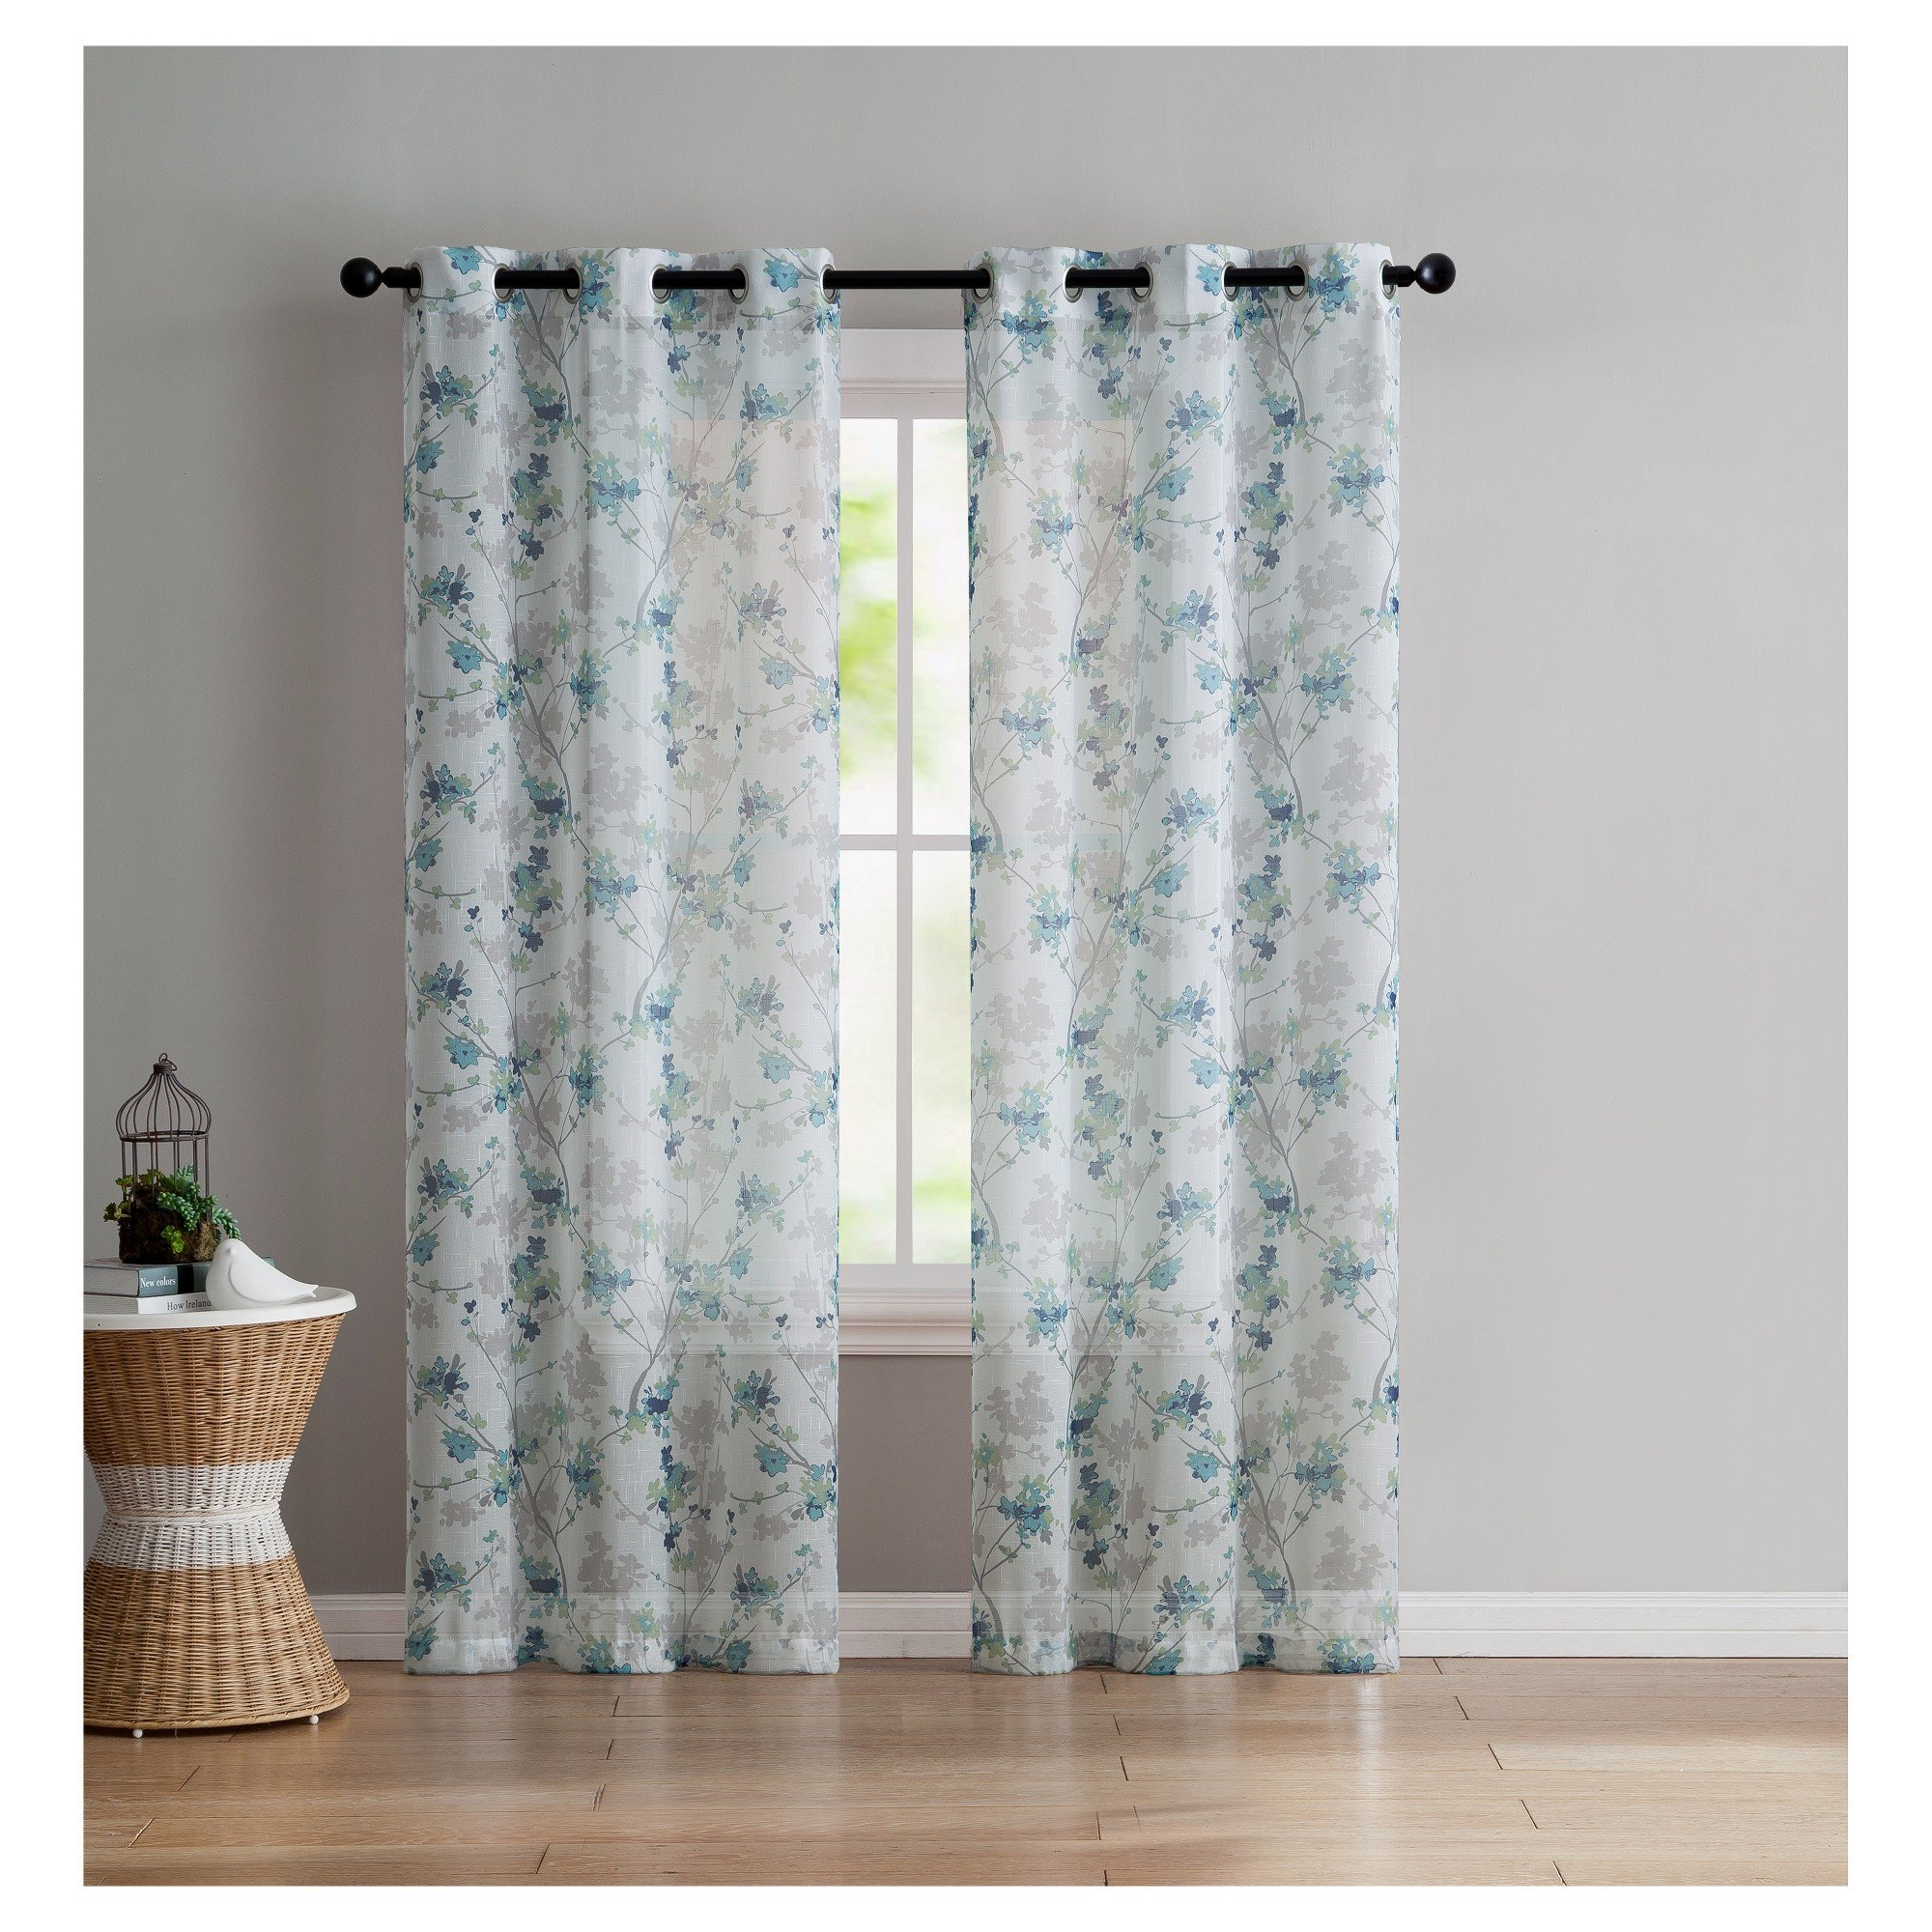 "Short Curtains for Bedroom Windows Awesome Jasmine Semi Window Sheer Aqua 38""x96"" Vcny Home Blue"